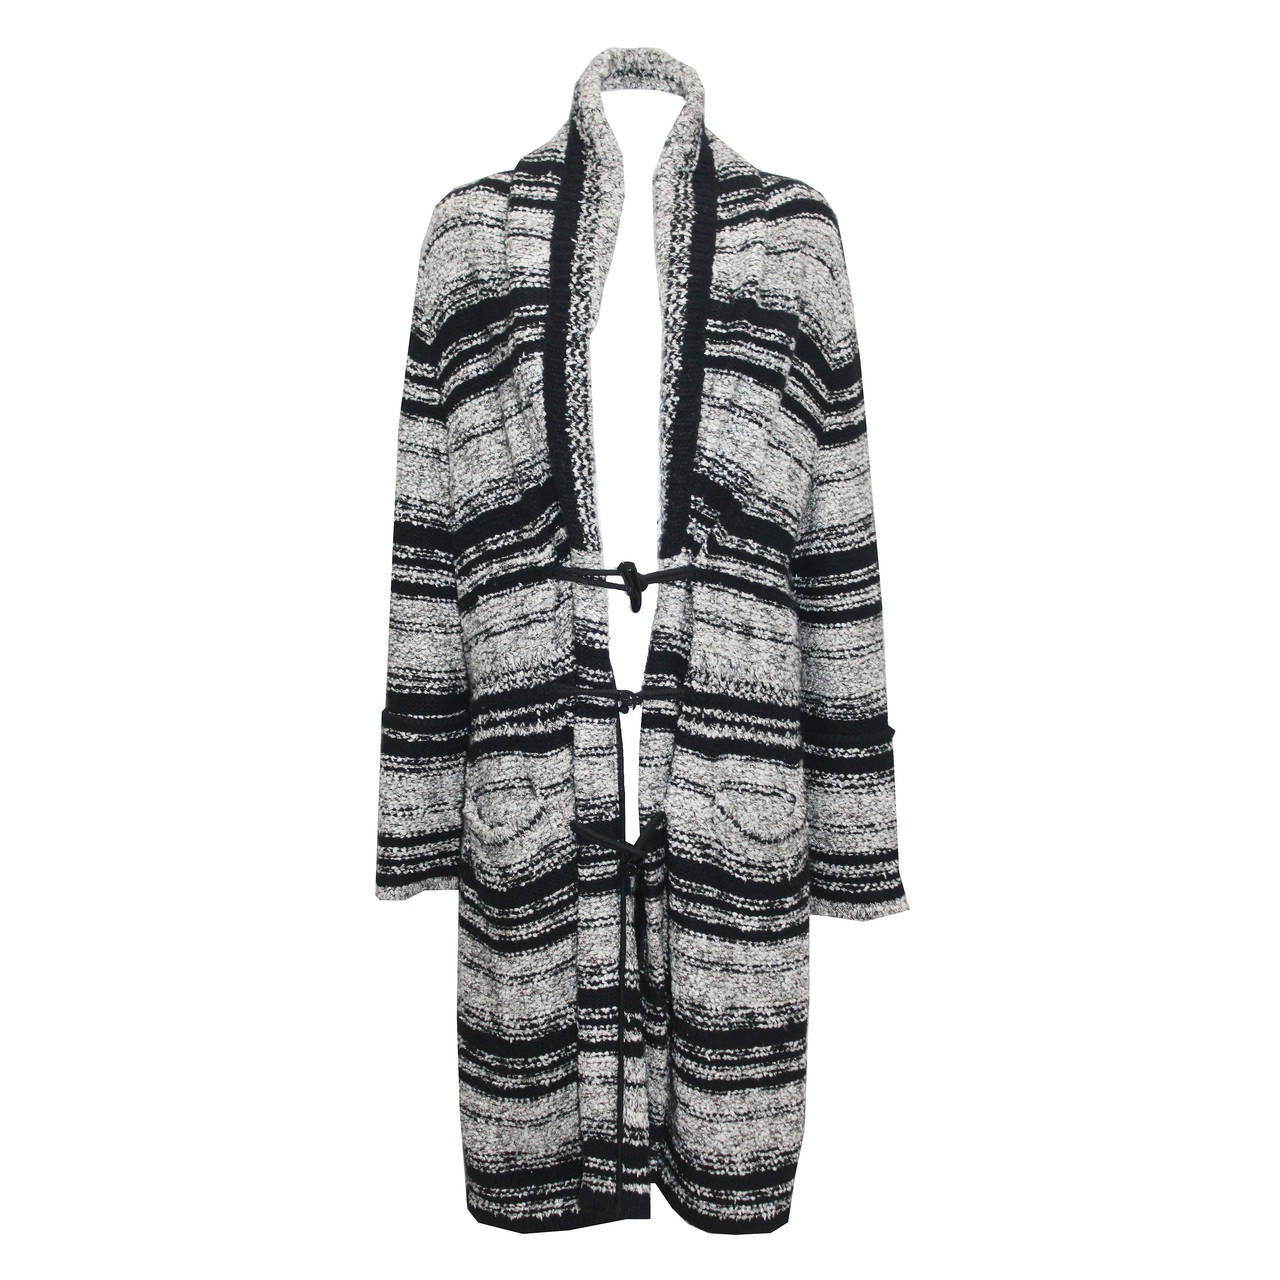 Chanel Oversized Knitted Tweed Cardigan Coat c. 2006 1